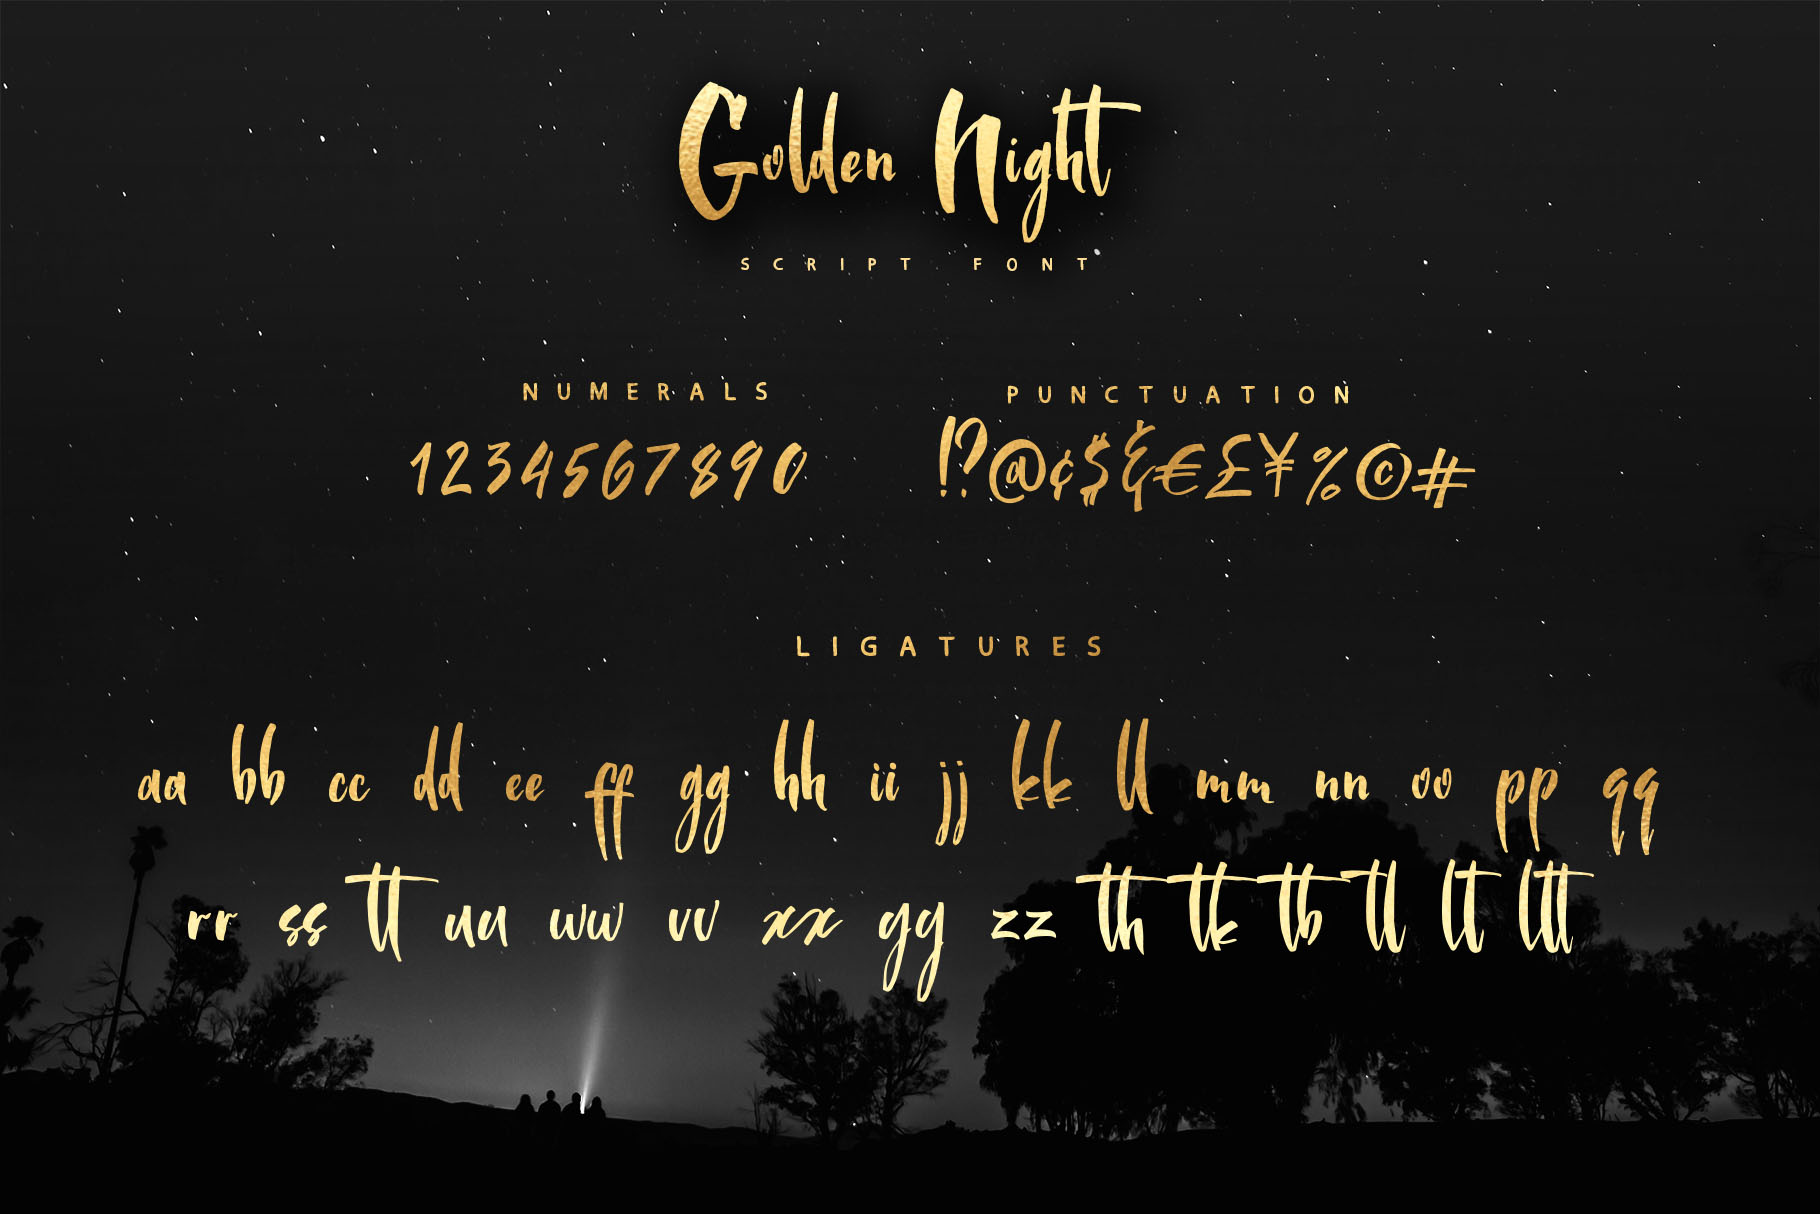 Golden Night script font example image 3